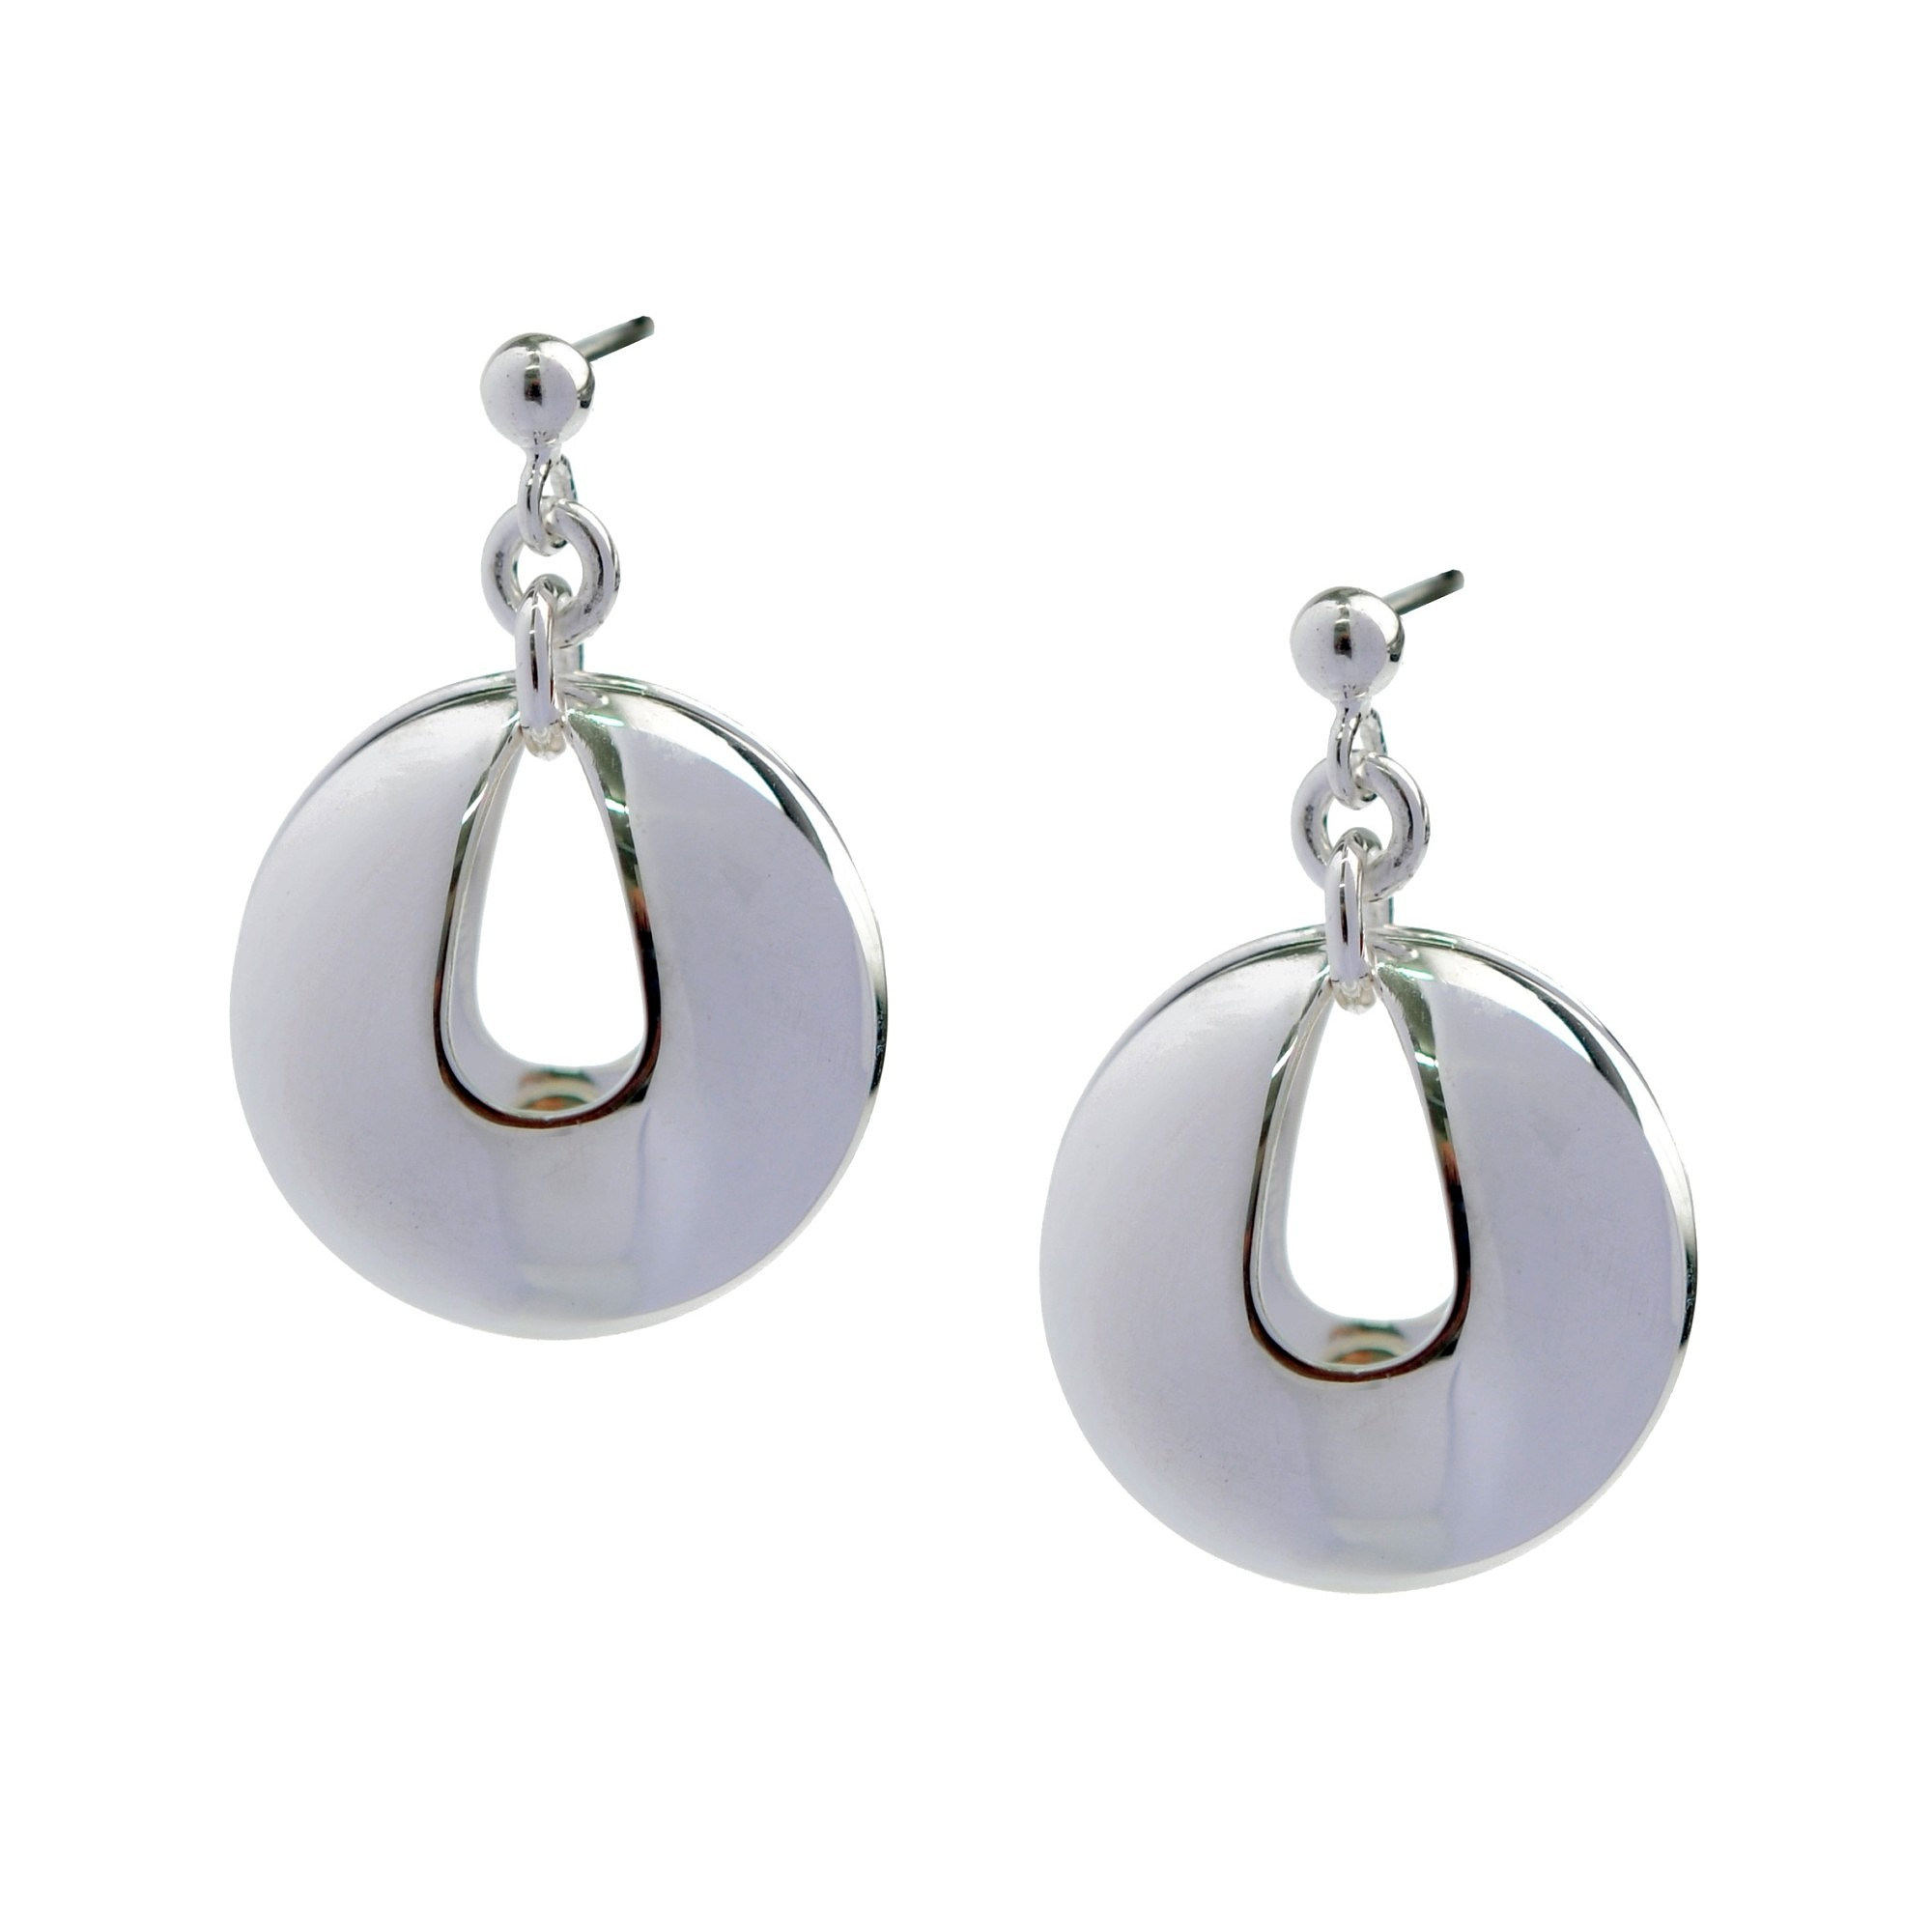 David&Martin Shell Collection Earrings